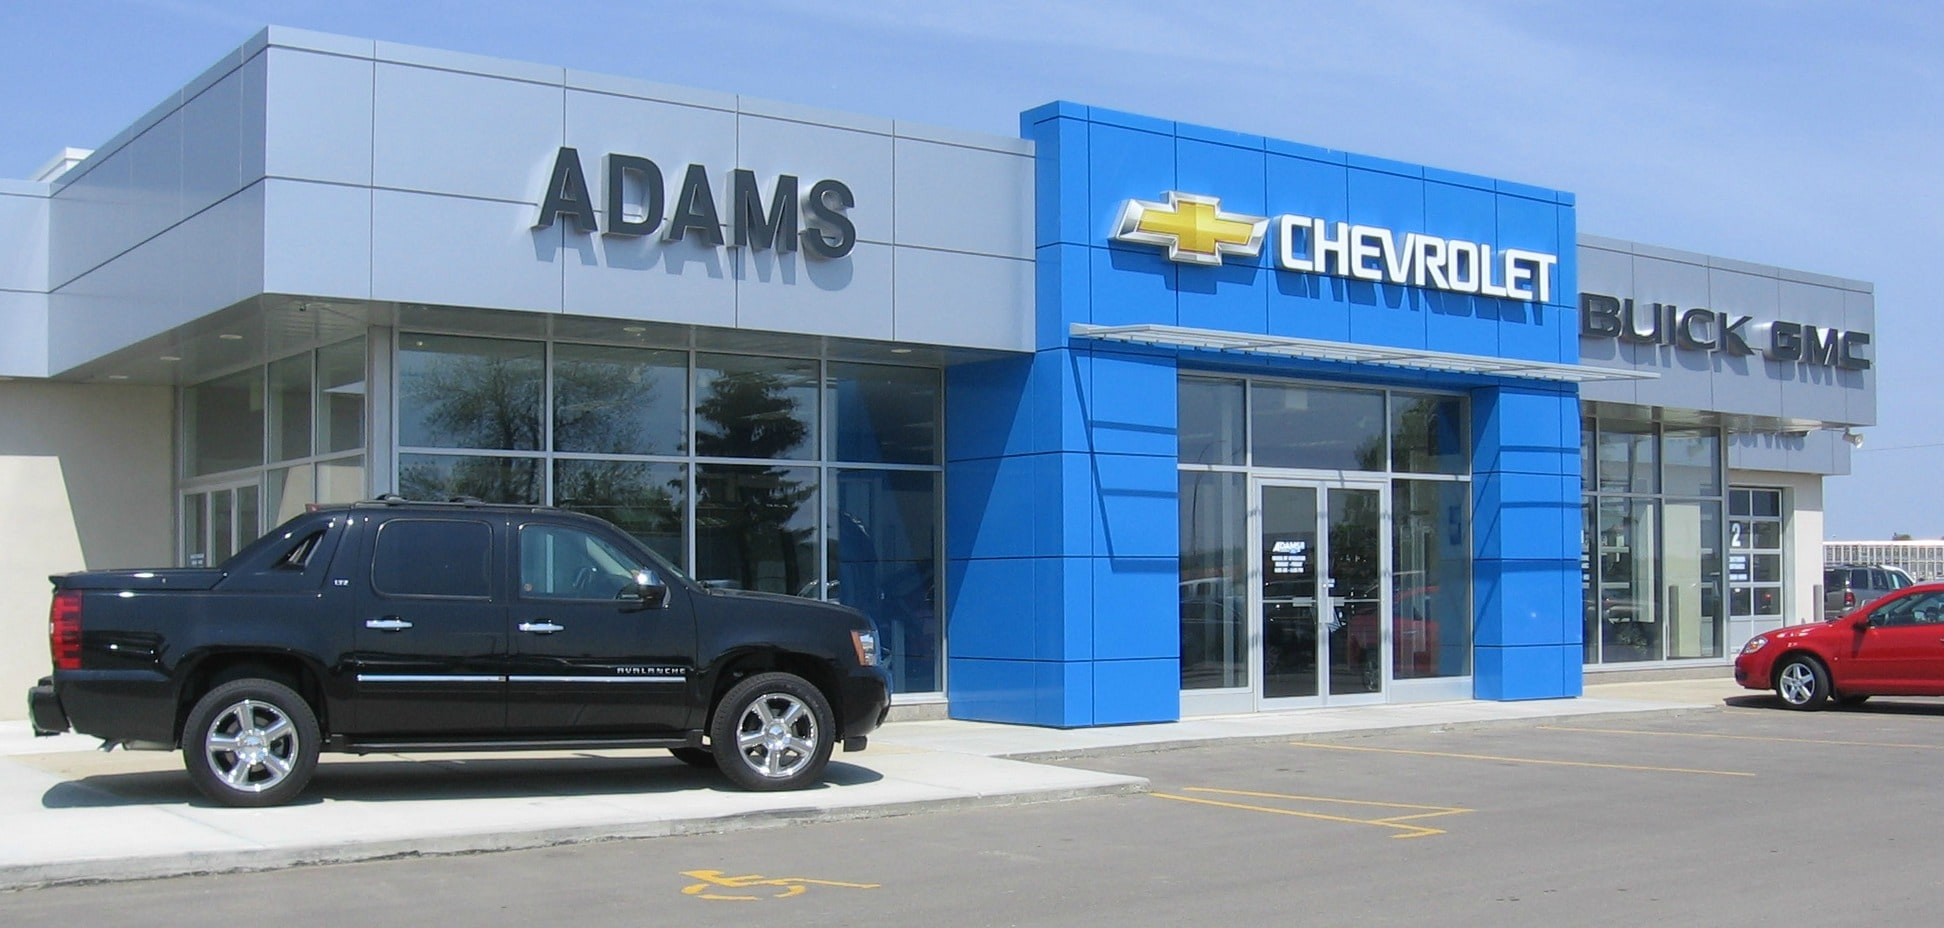 Discount Tire Hours Sunday >> Chevrolet Buick GMC Dealer in Ponoka | Adams Chevrolet ...